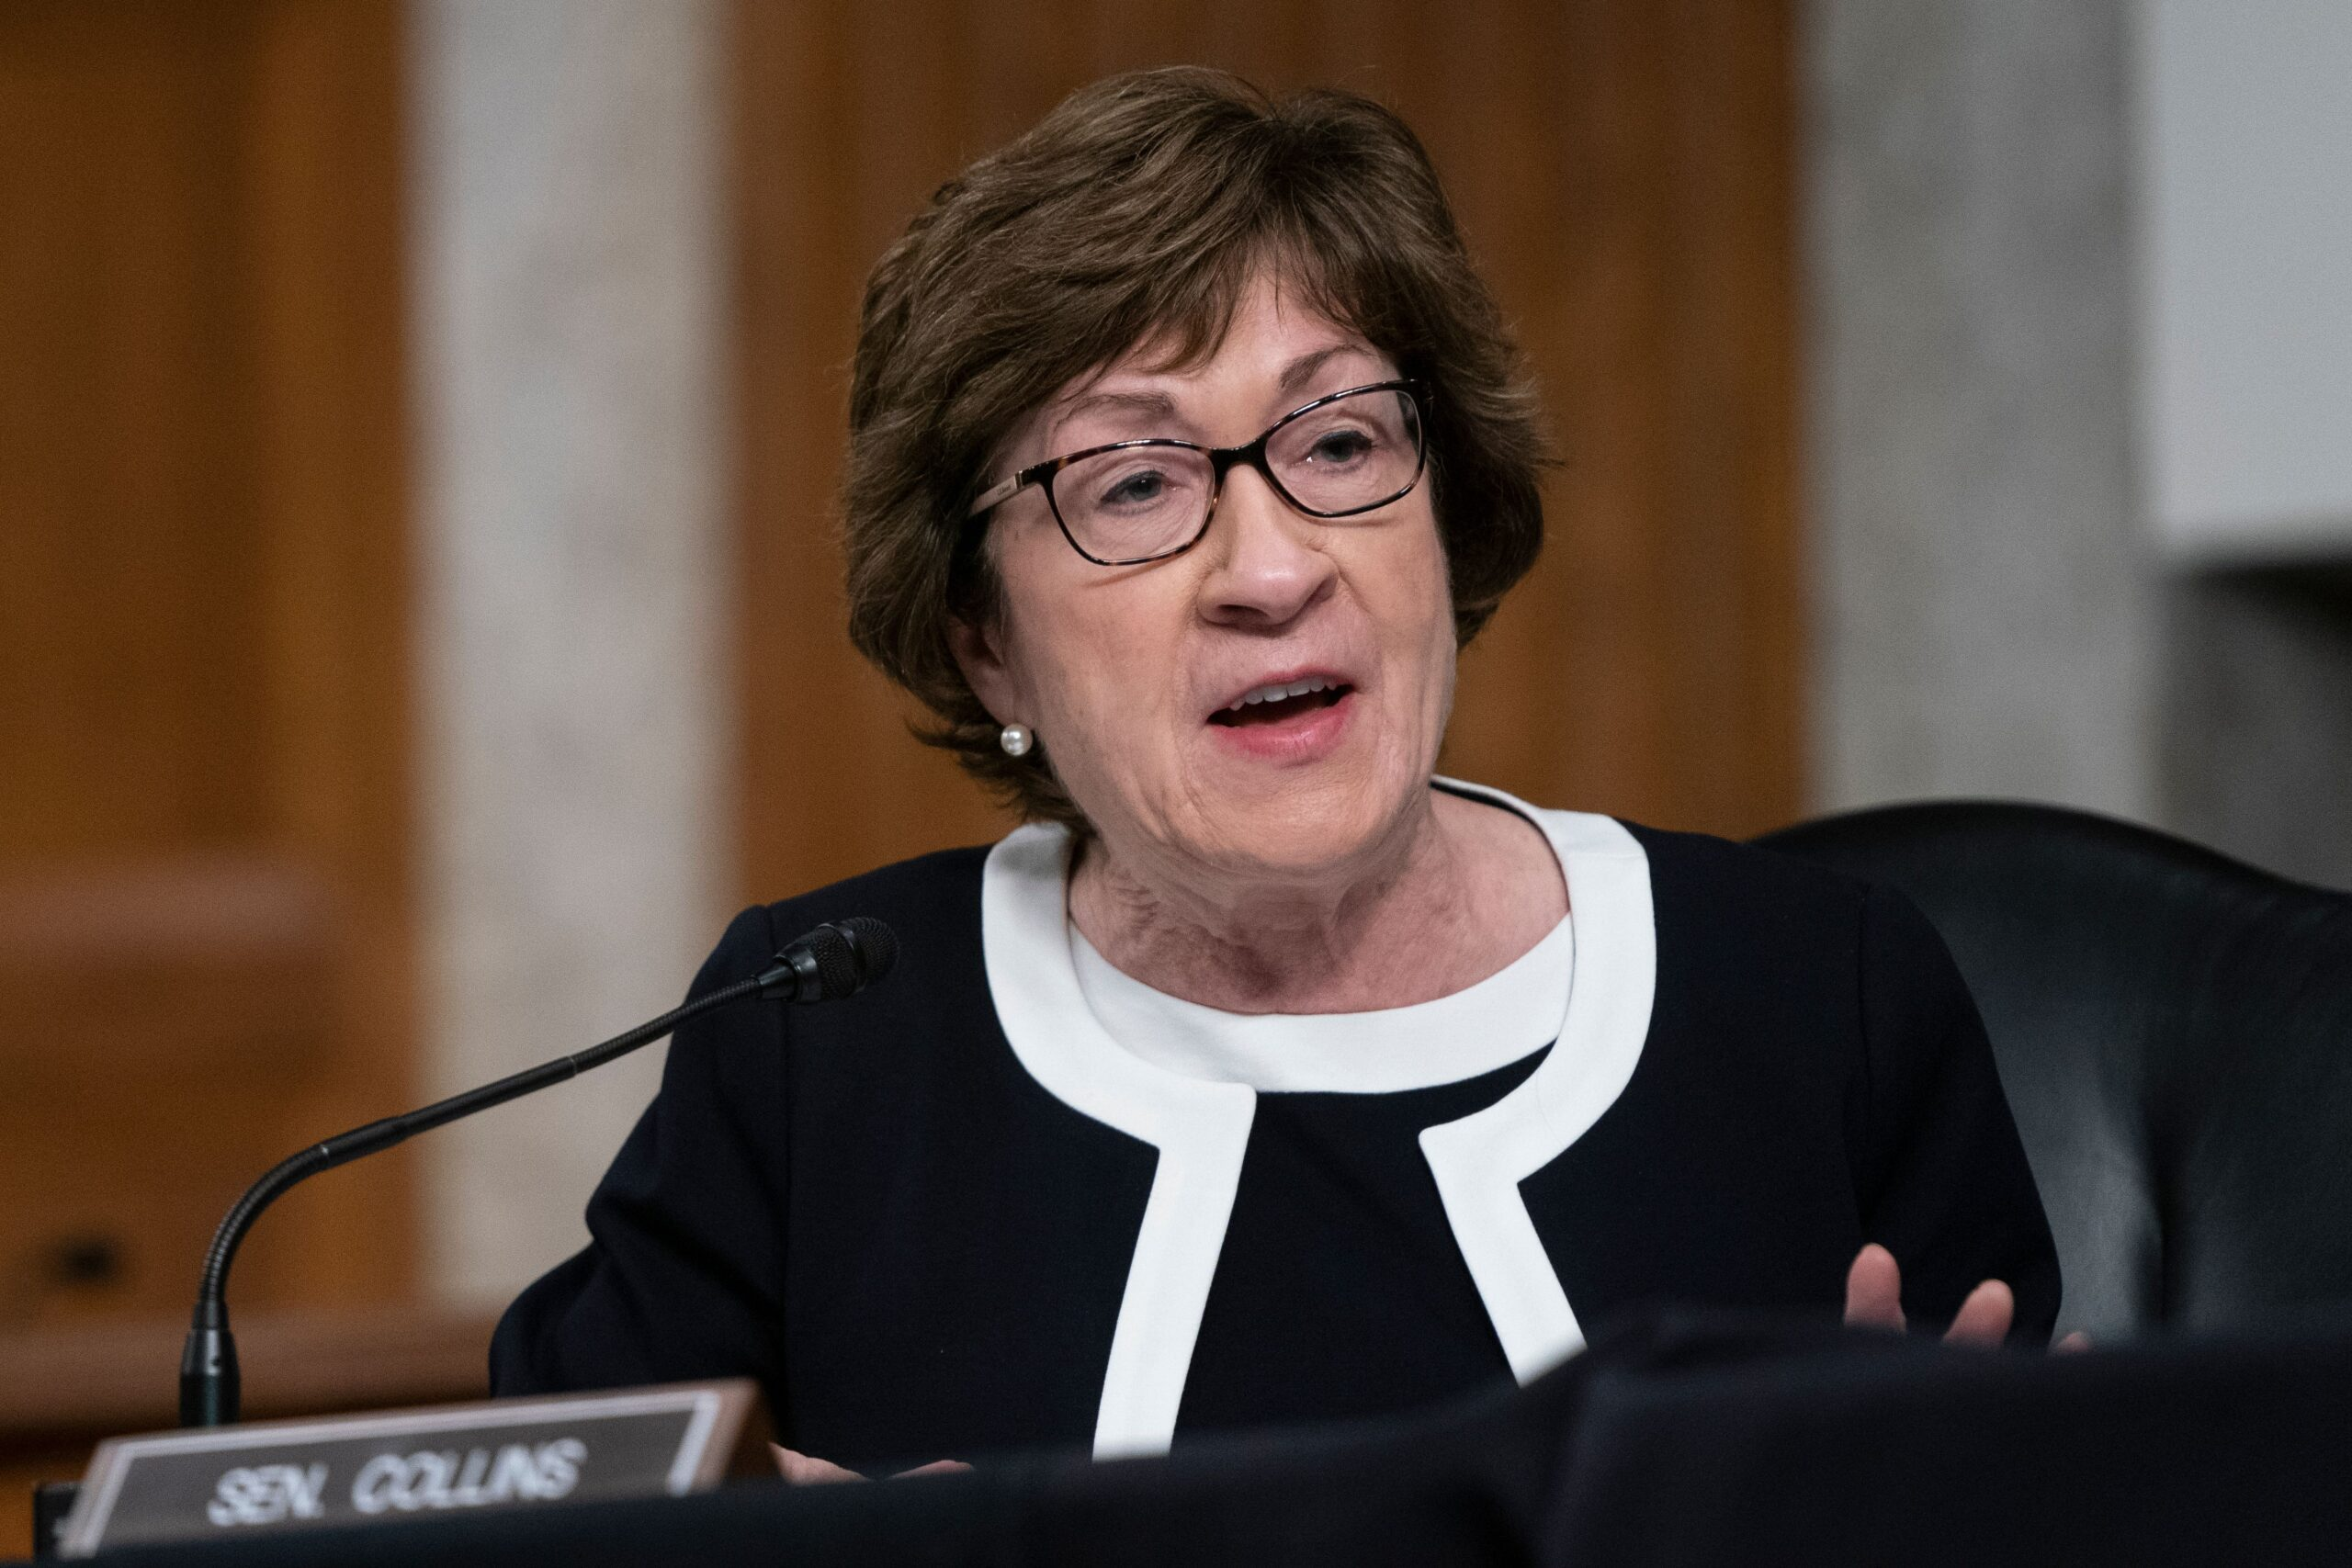 susan-collins-calls-texas-abortion-law-'inhumane,'-defends-roe-v.-wade-as-'law-of-the-land'